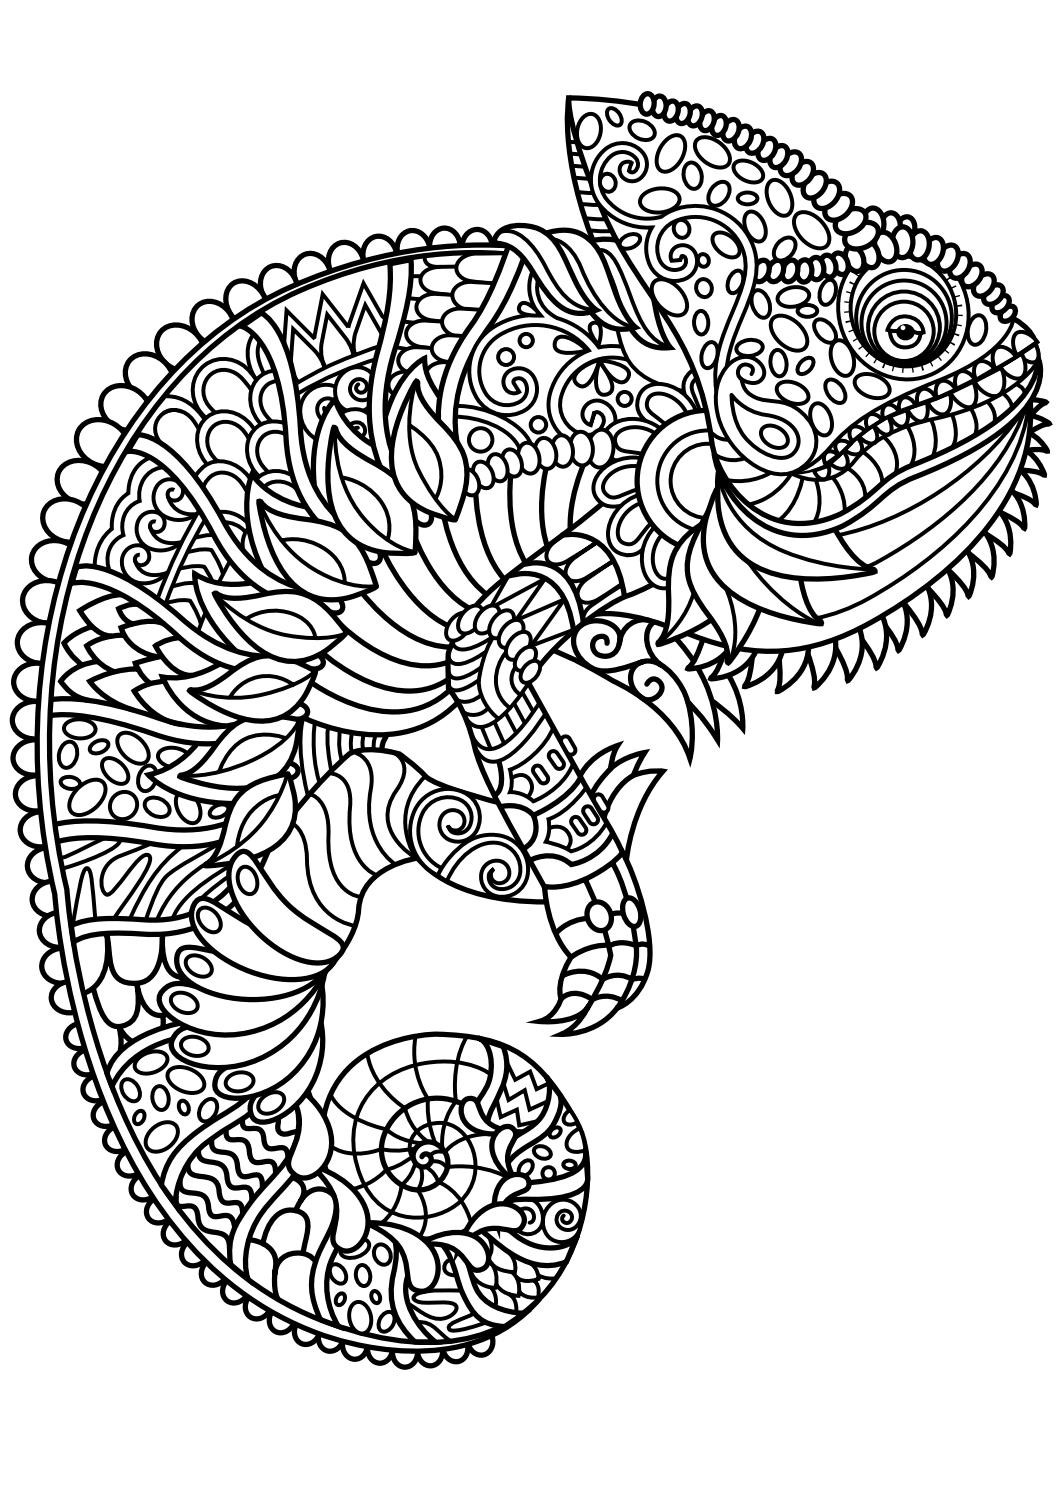 cheetah coloring pages for adults animal coloring pages for adults best coloring pages for pages adults for cheetah coloring